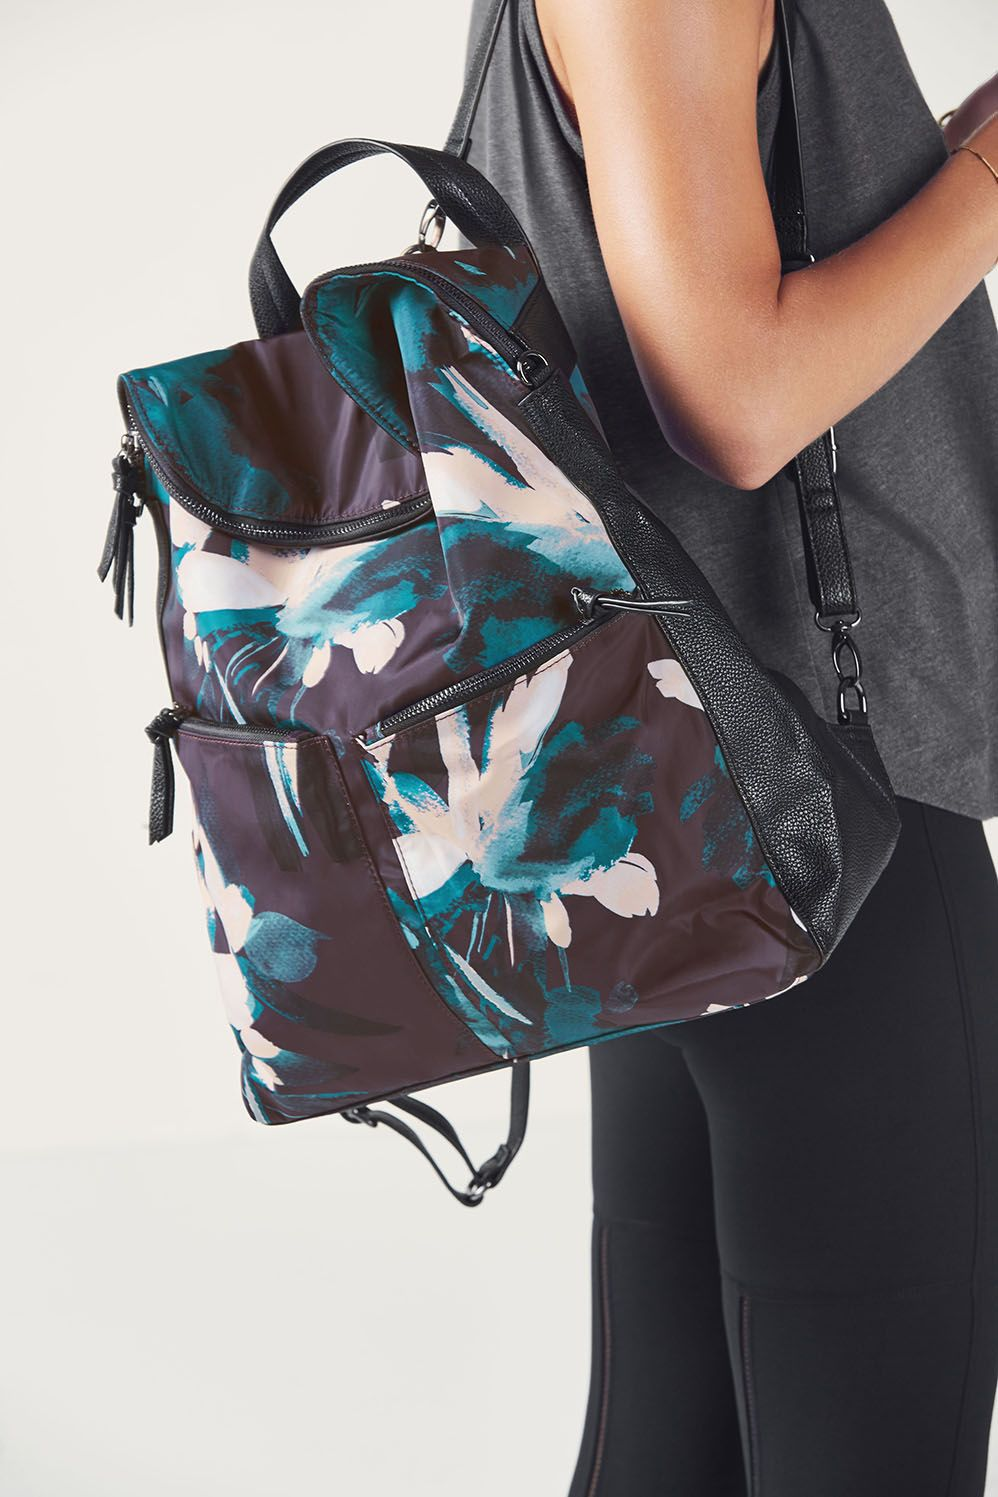 257931f040a1 Fabletics Bags The Everything Backpack Womens Floral Spark Print One Size  Fits Most